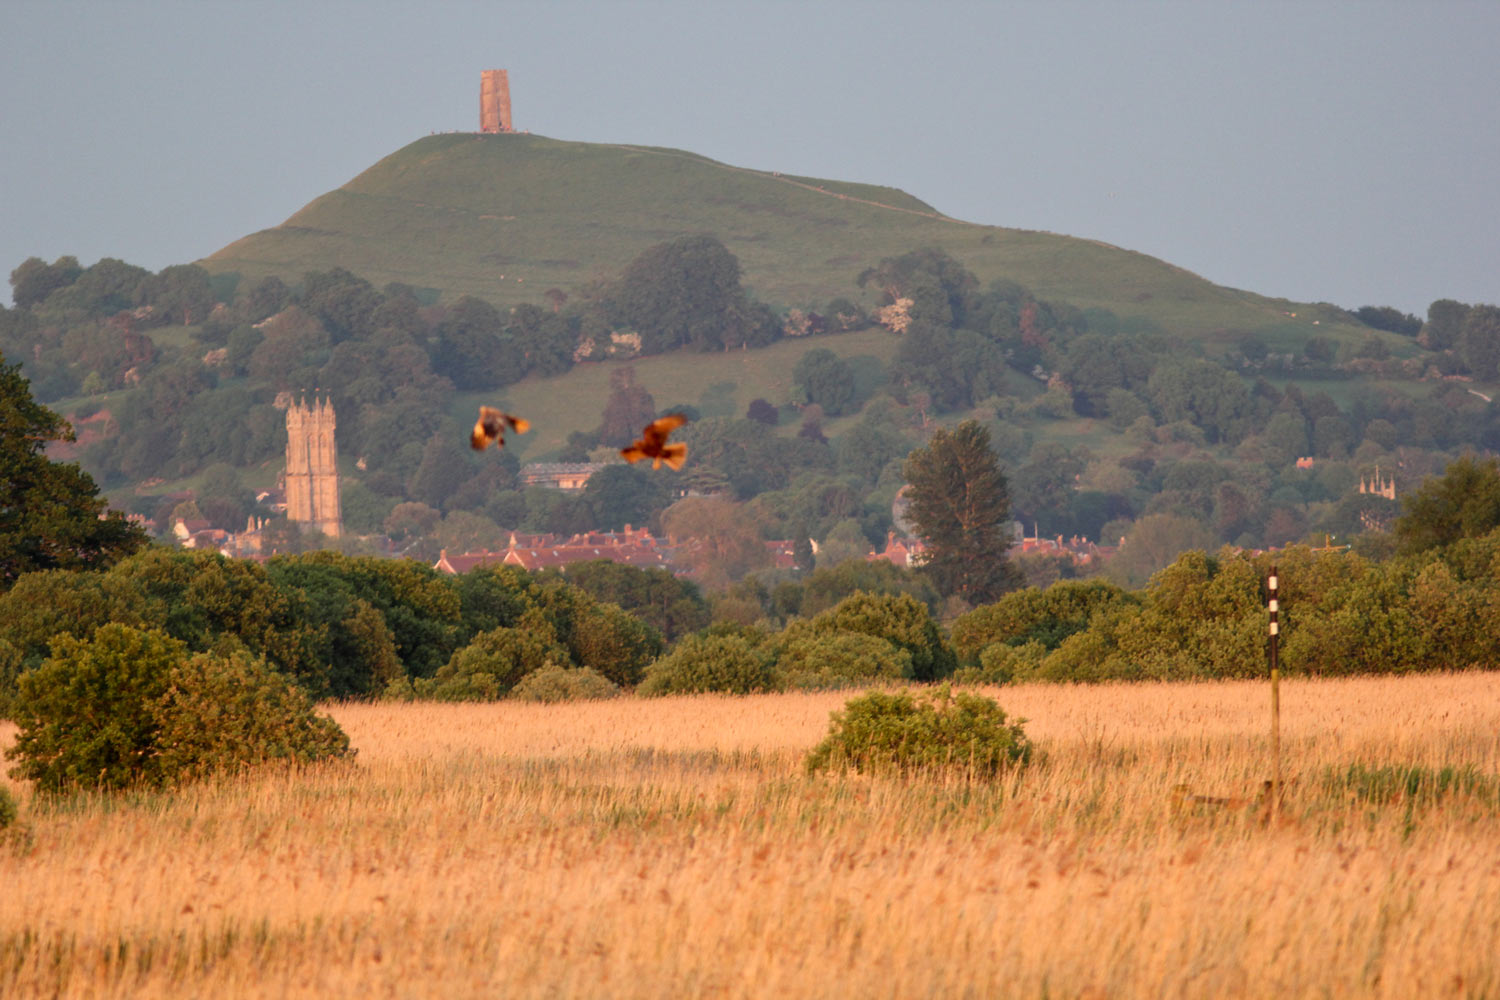 marsh-harriers